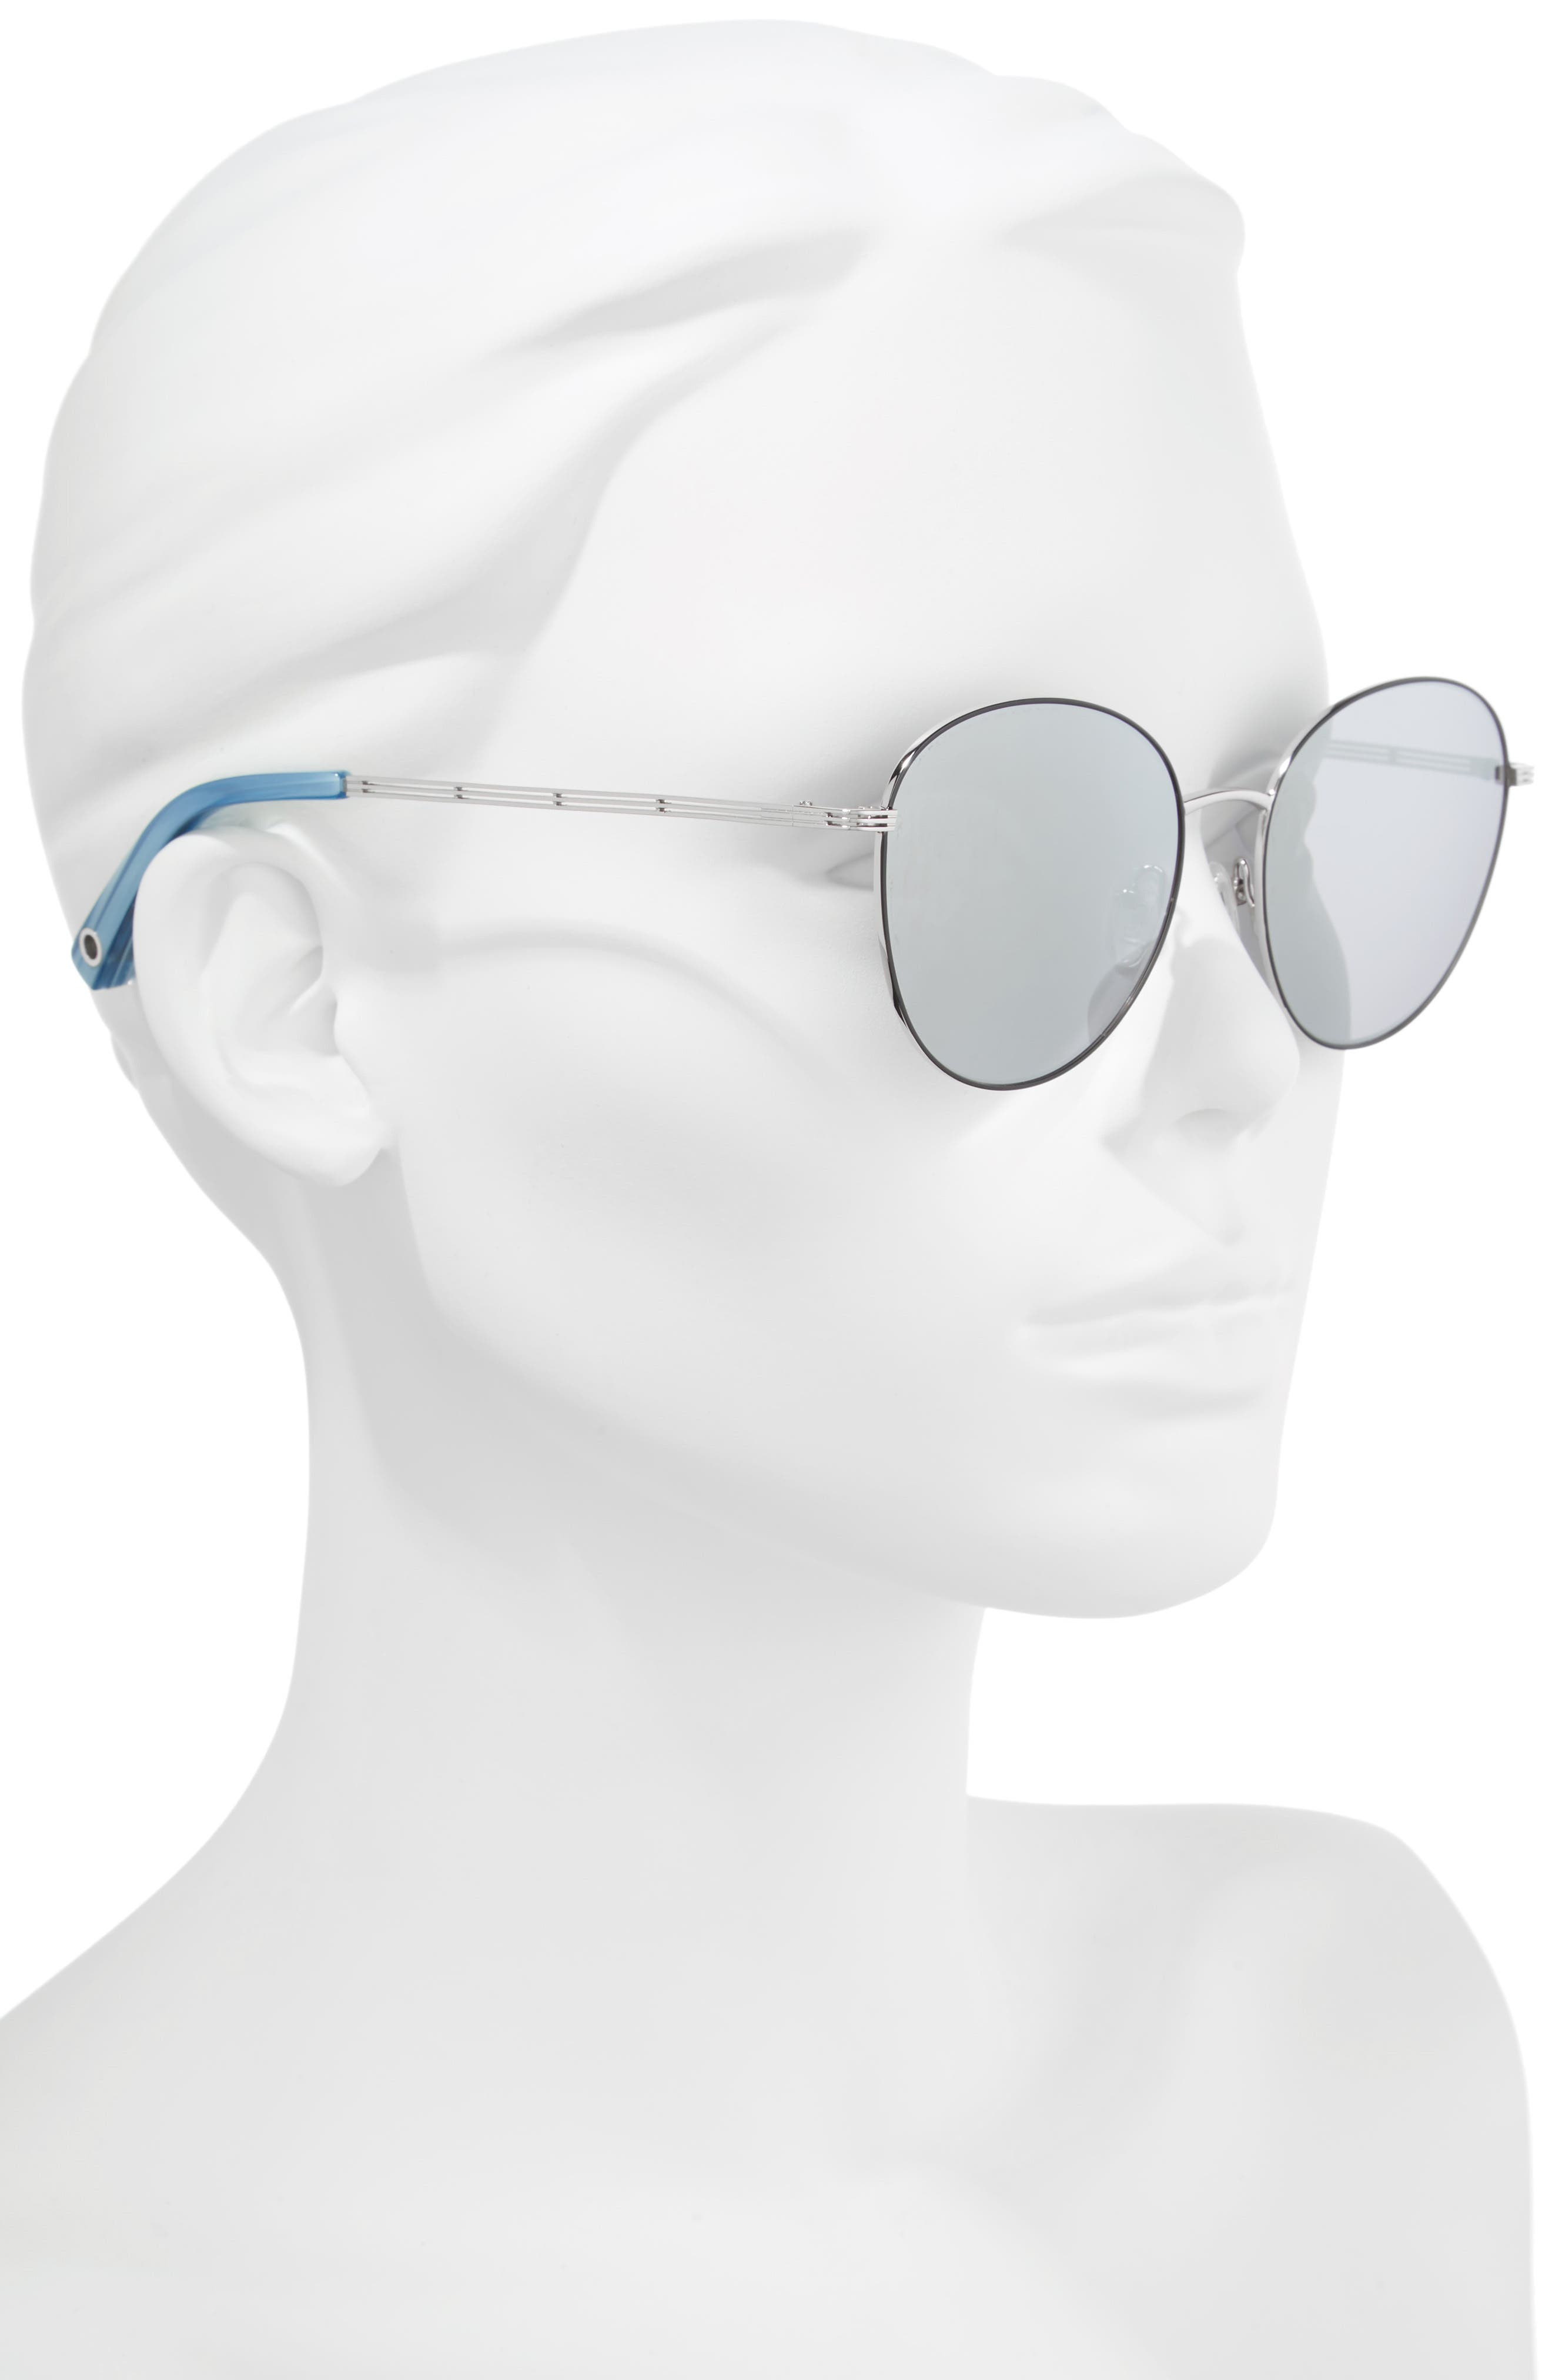 Gilmour 53mm Round Sunglasses & Beaded Chain,                             Alternate thumbnail 4, color,